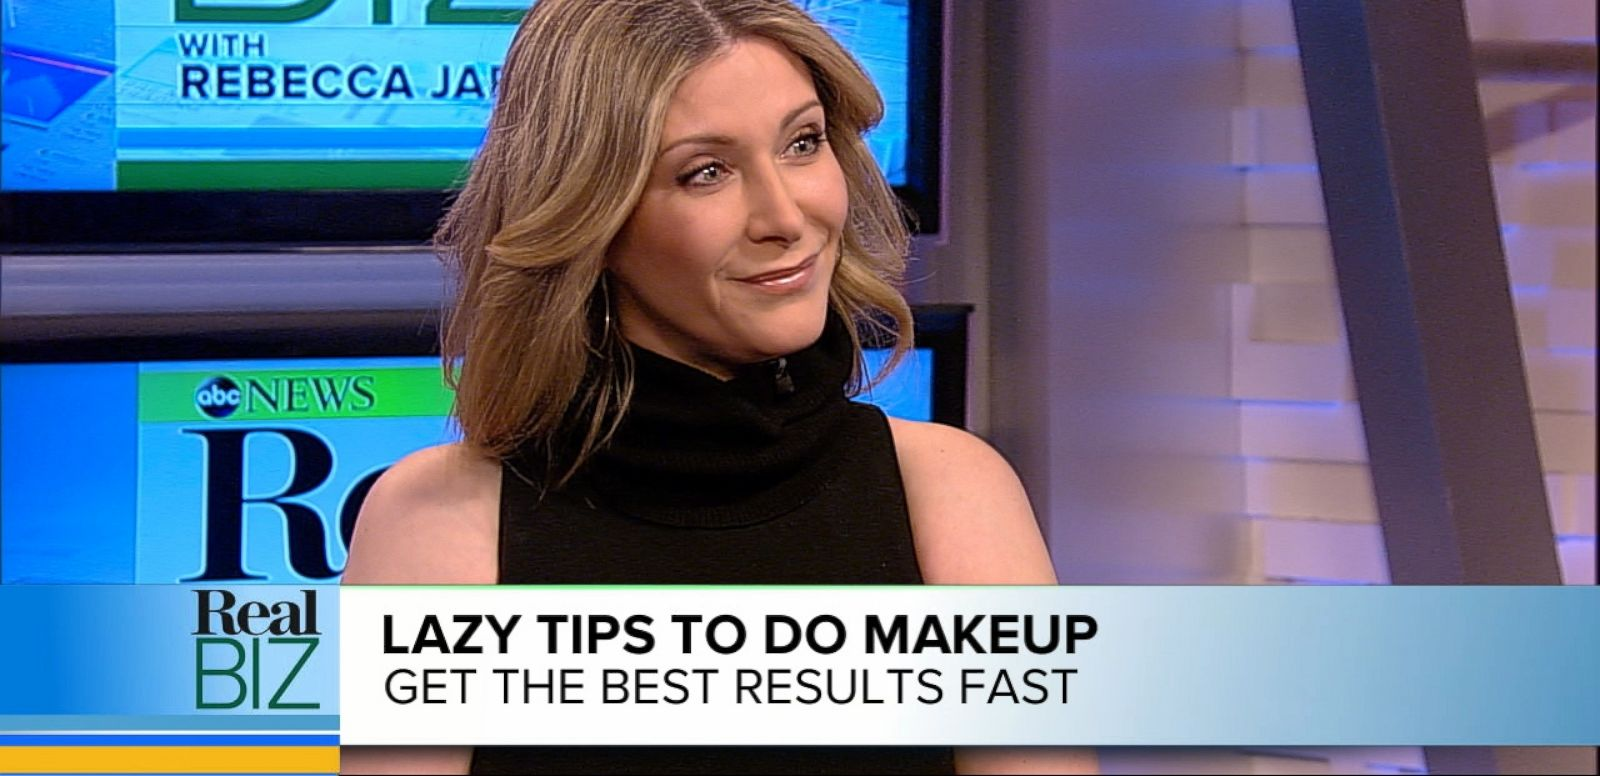 VIDEO: 10 Minute Makeup Tips For Working Women